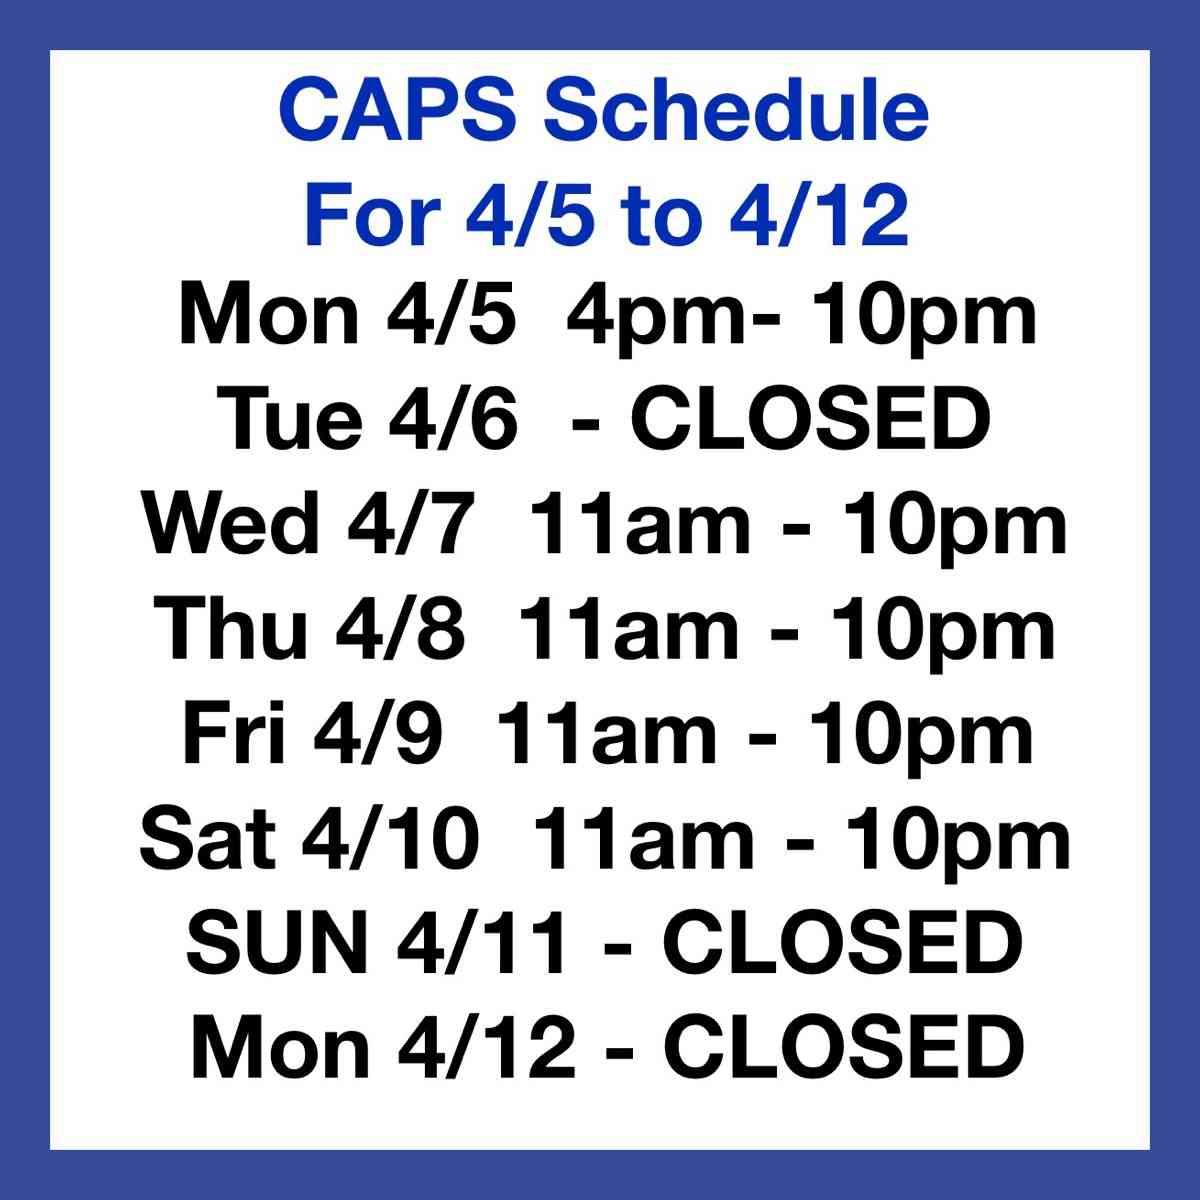 Schedule for 4/5 through 4/12